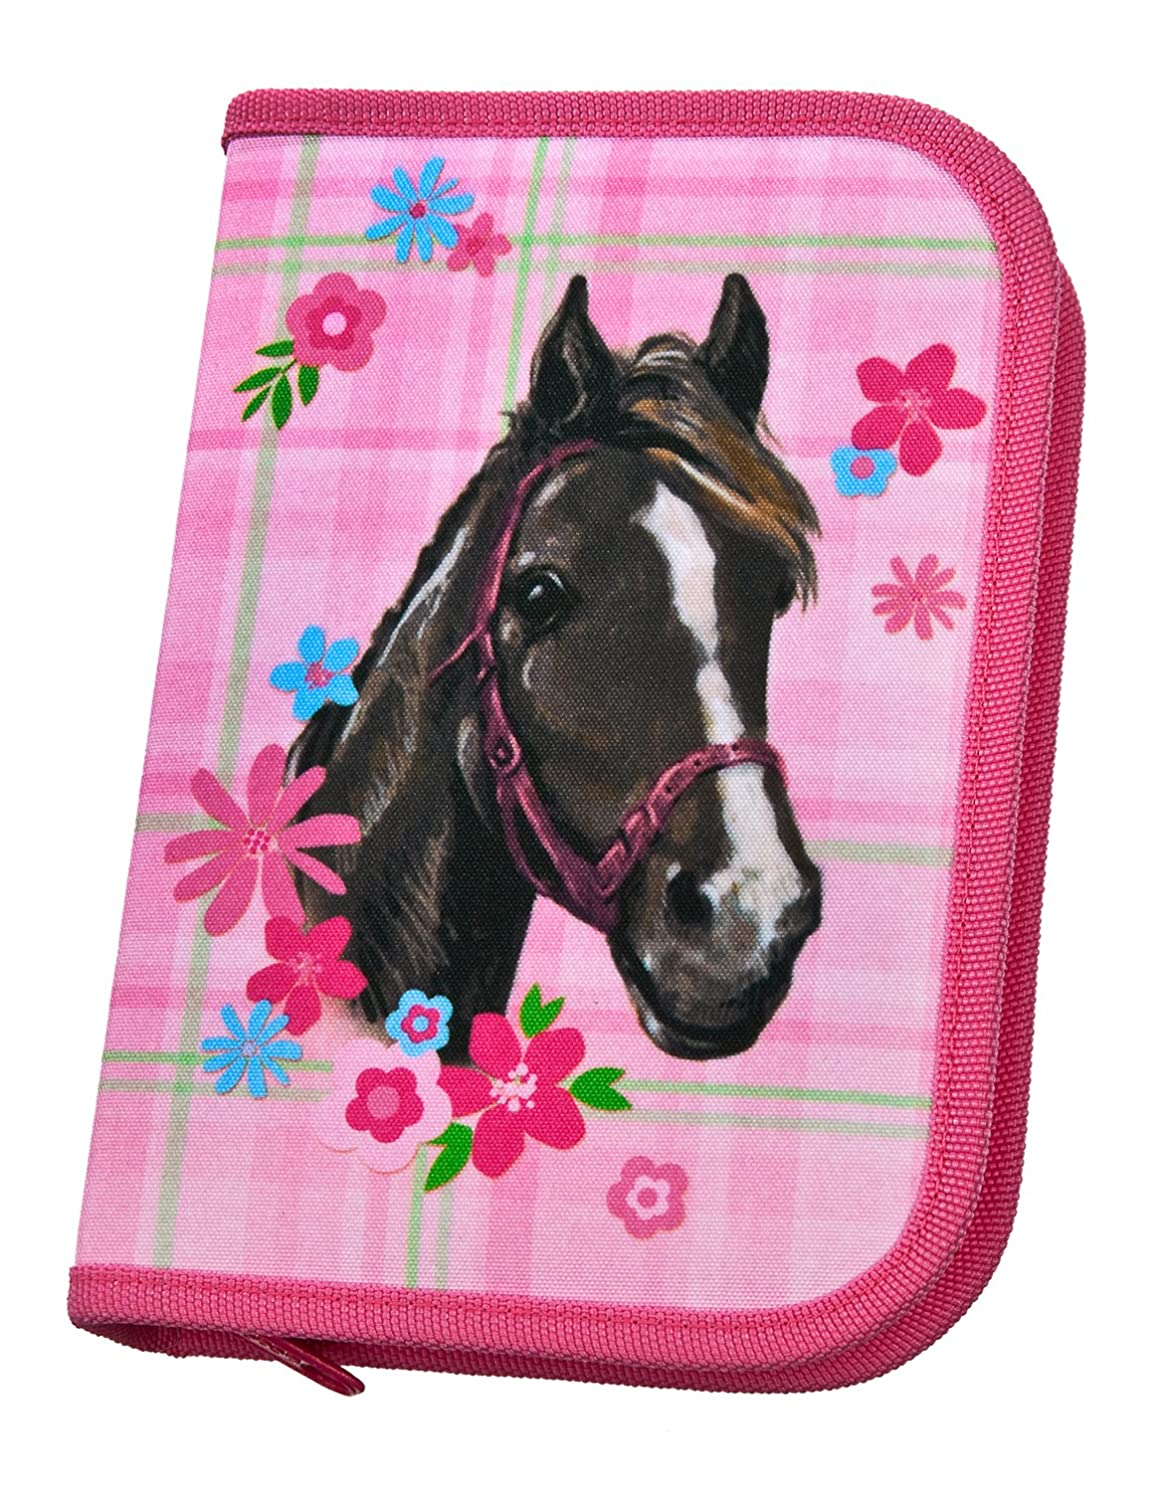 Scooli HCAM0443?Horse Champion No Stabilo Brand Filled Pencil Case